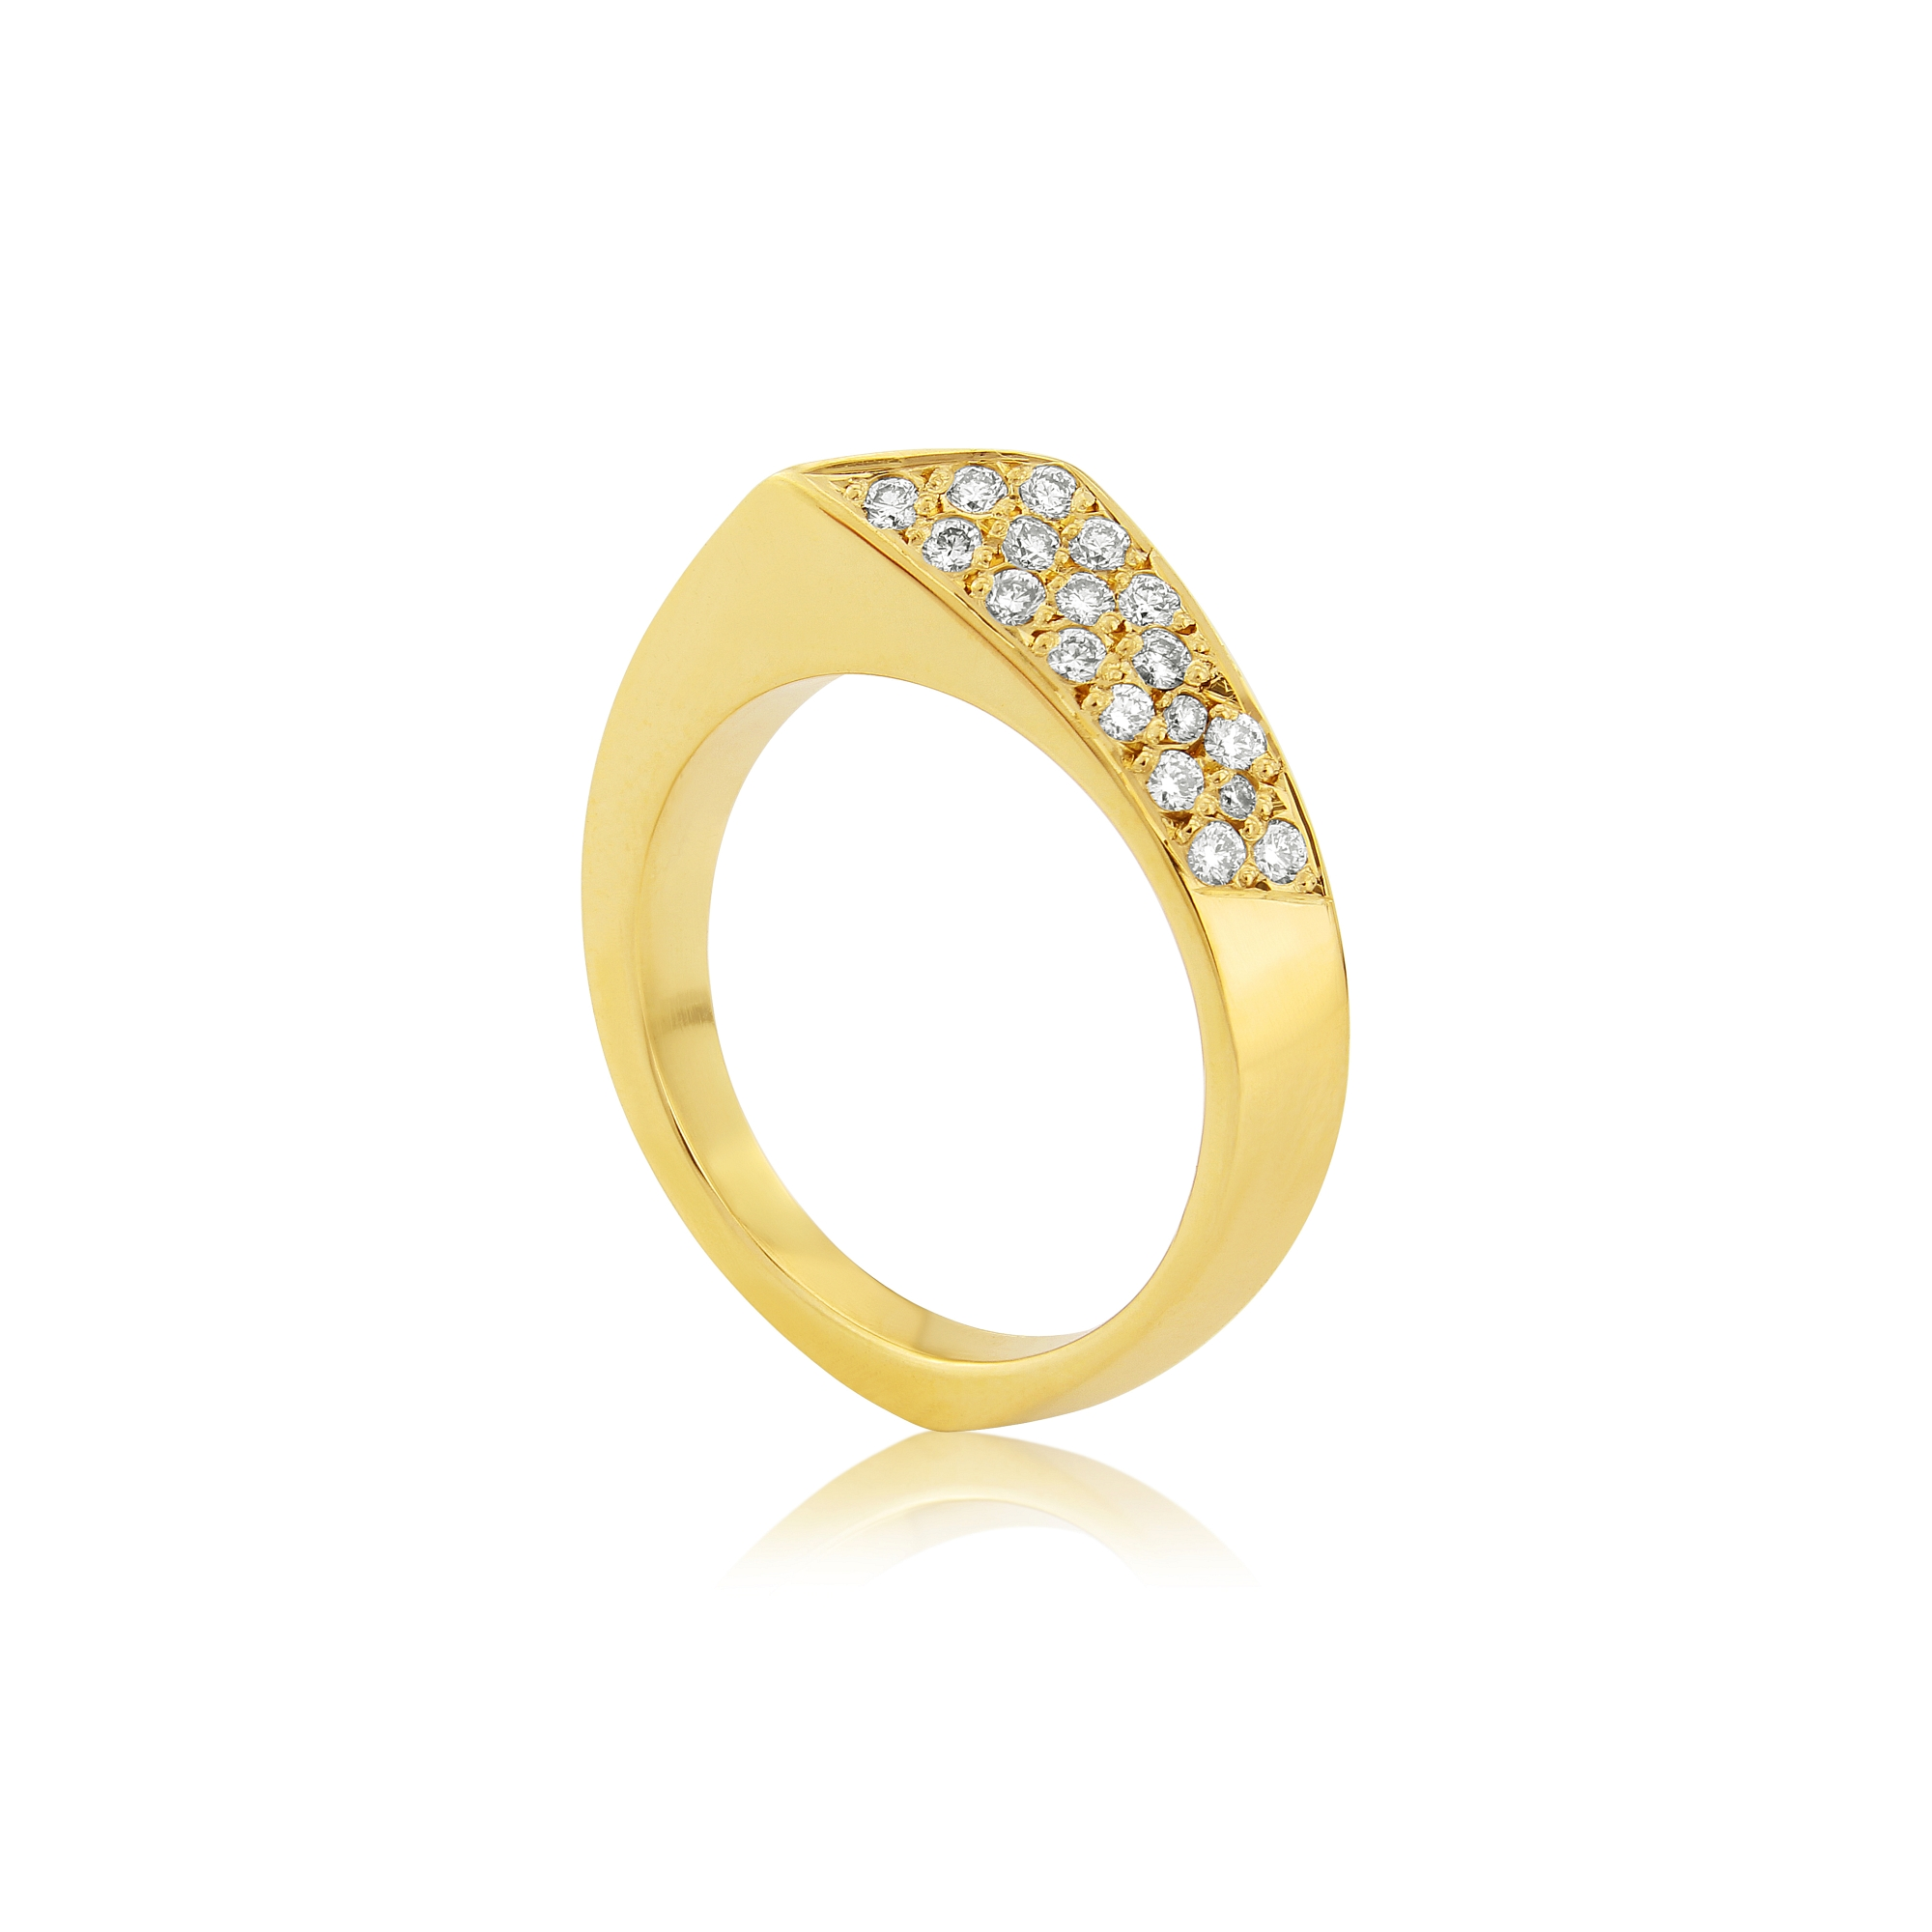 Fashion dress ring with chamfered edges and face mounted in 9ct gold and set with diamonds.